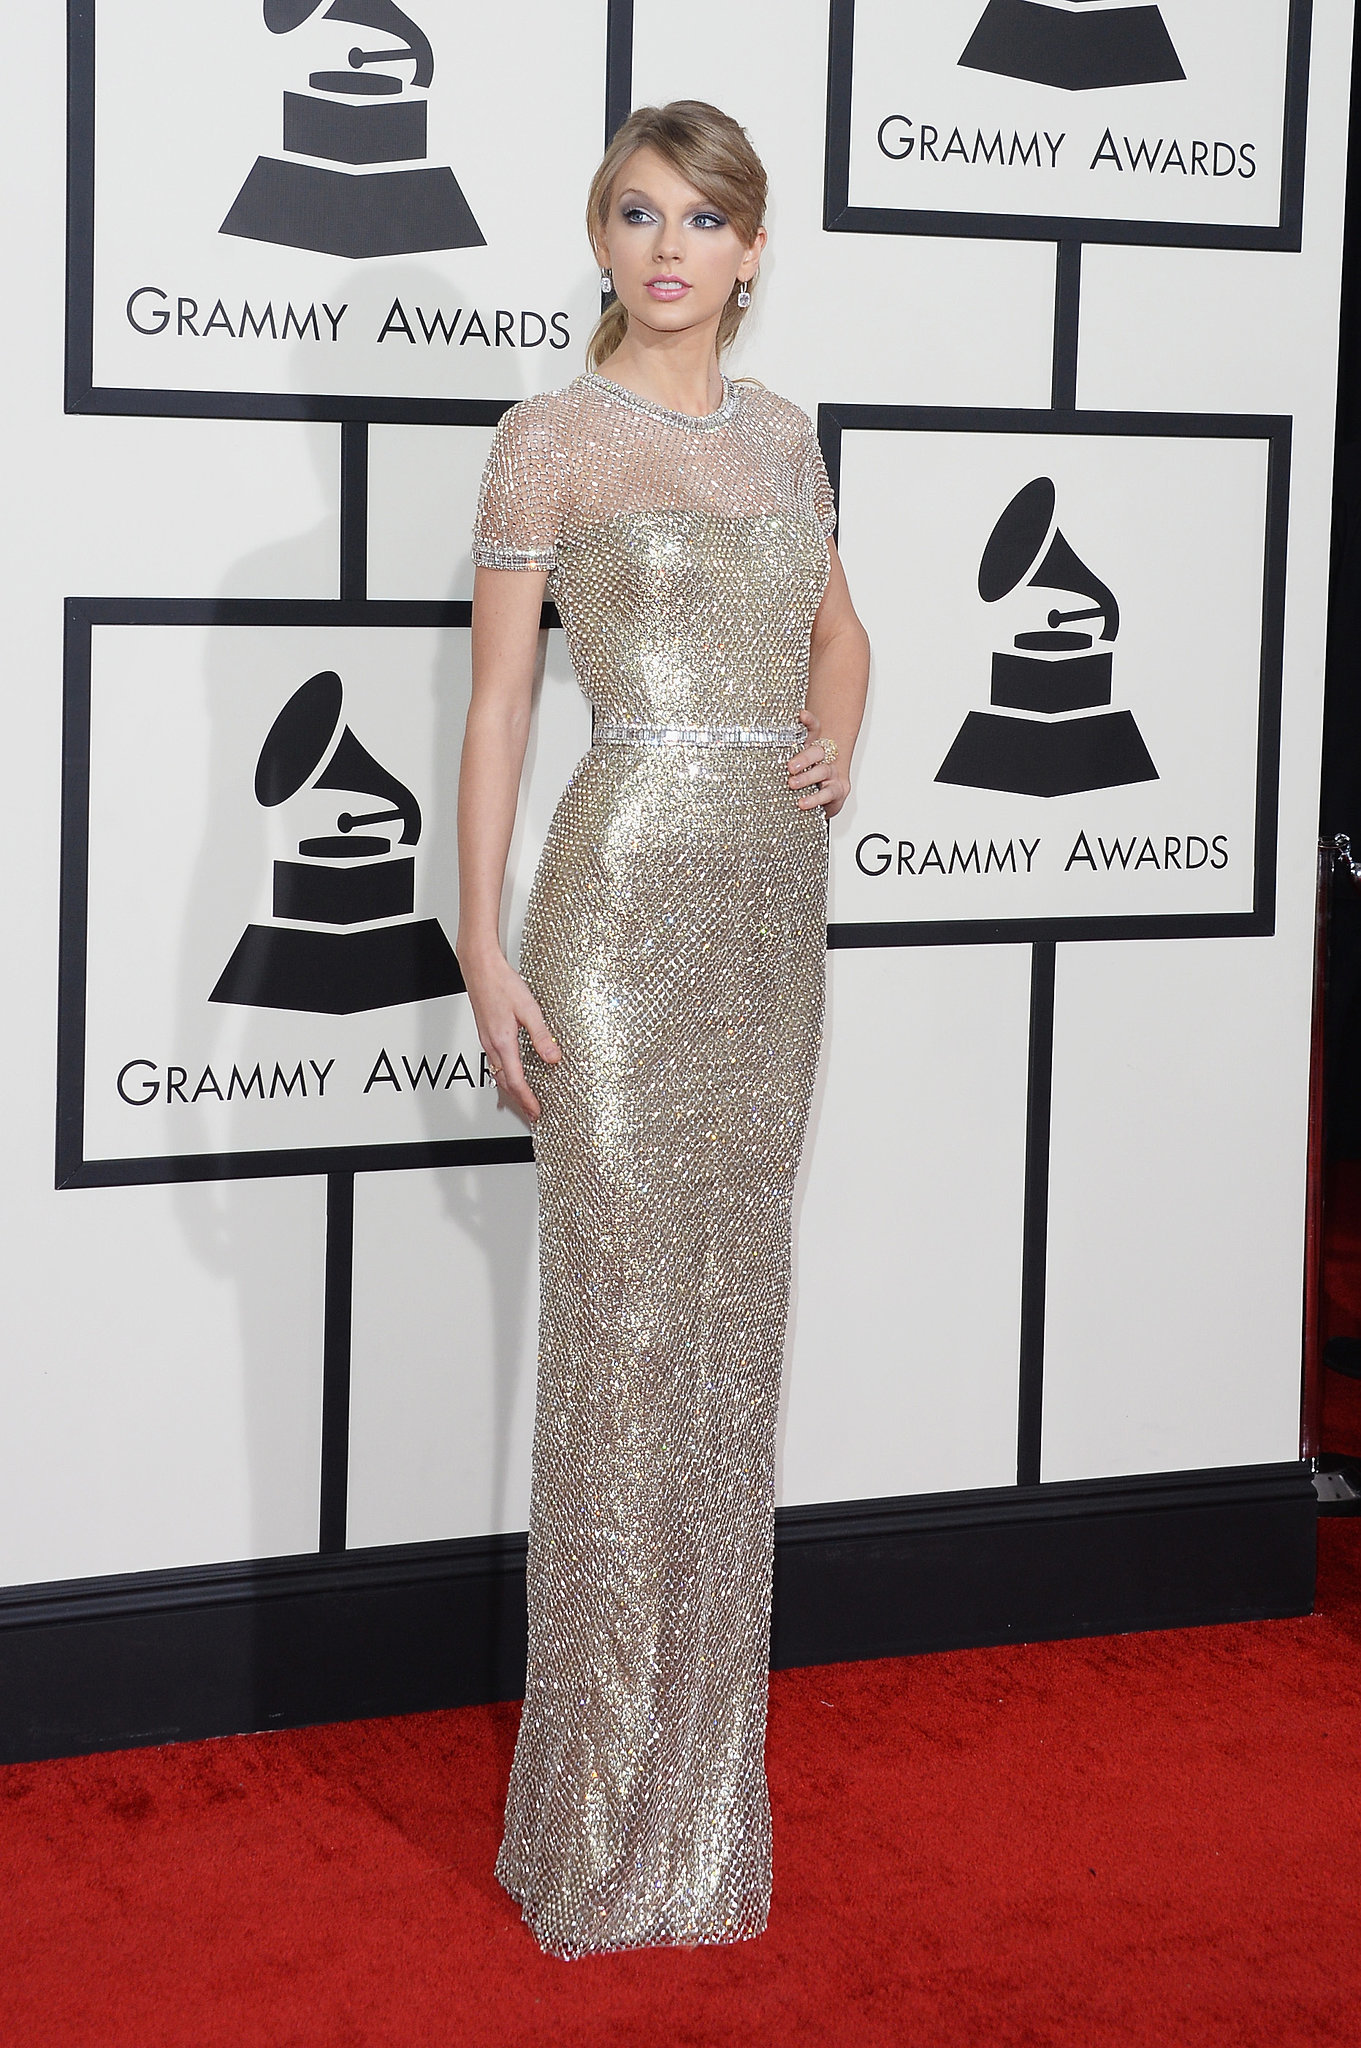 Taylor Swift Red Grammy Awards Dress Ups With Net Silver Gown